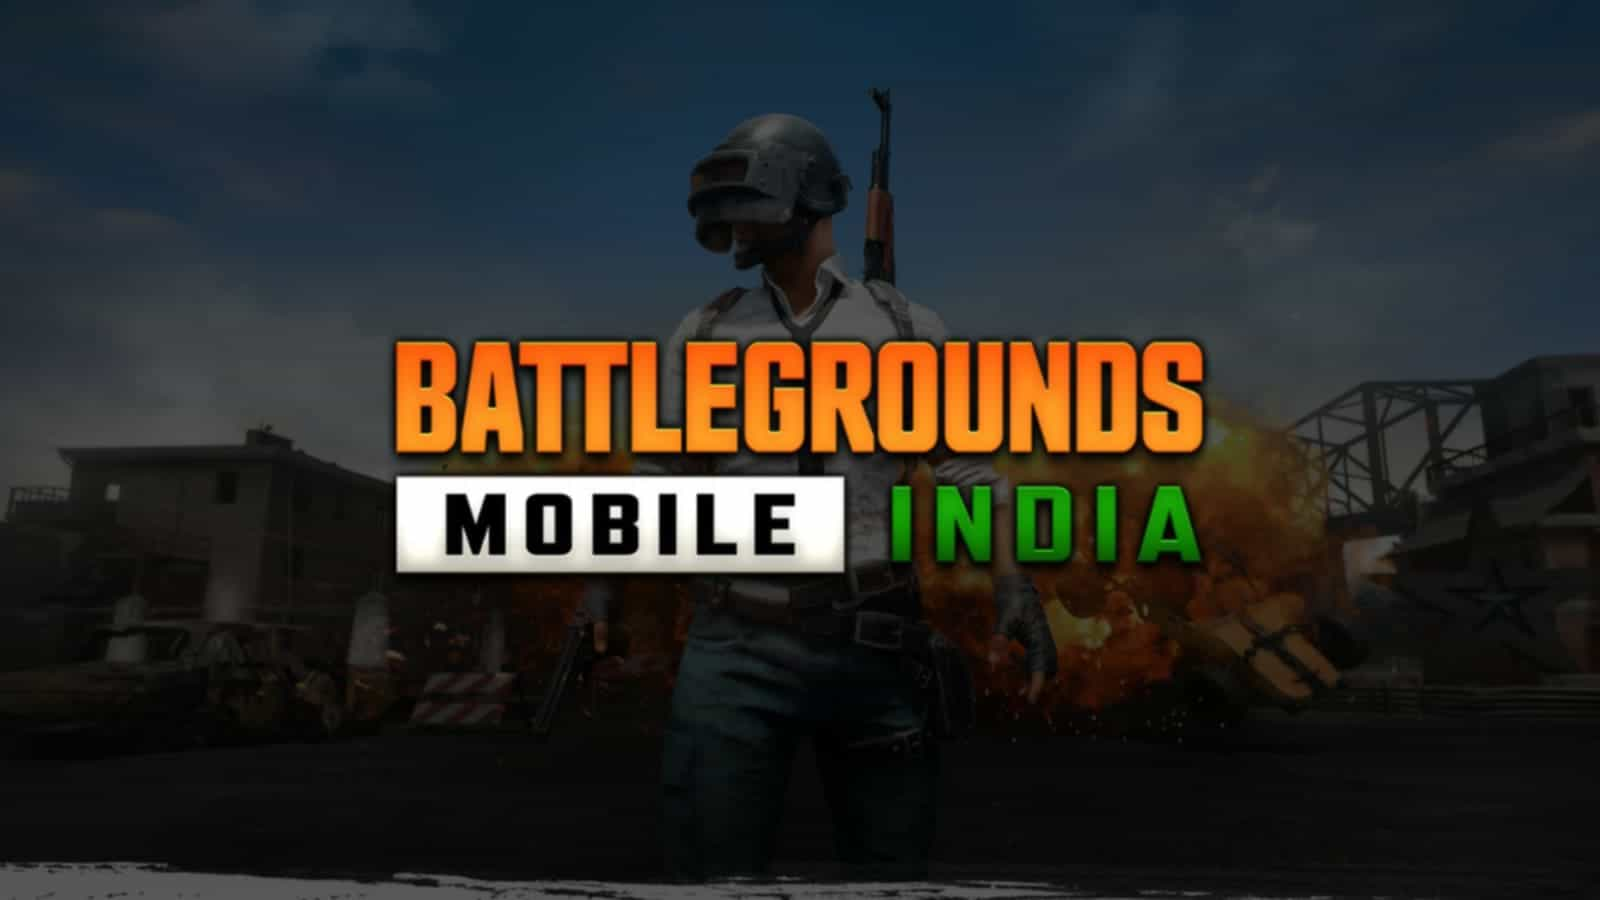 Pre-Registrations and Contemplated APK Size of the game